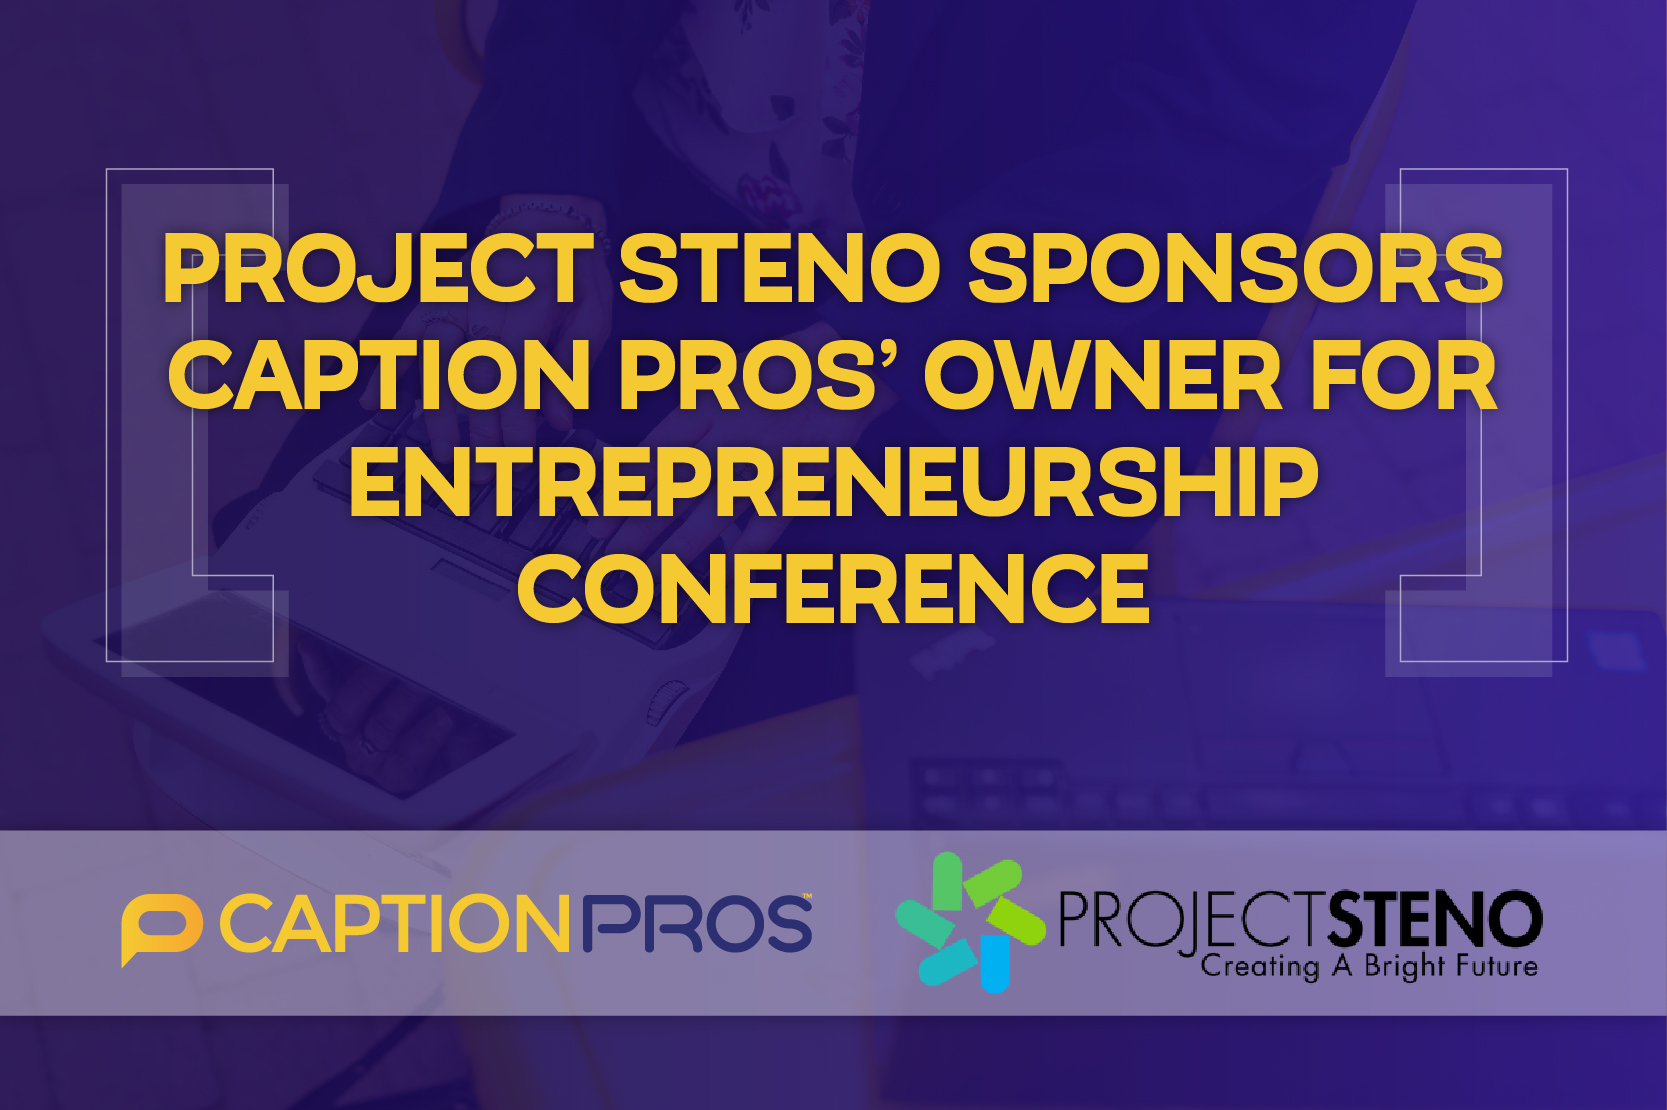 Project Steno Sponsors Caption Pros' Owner